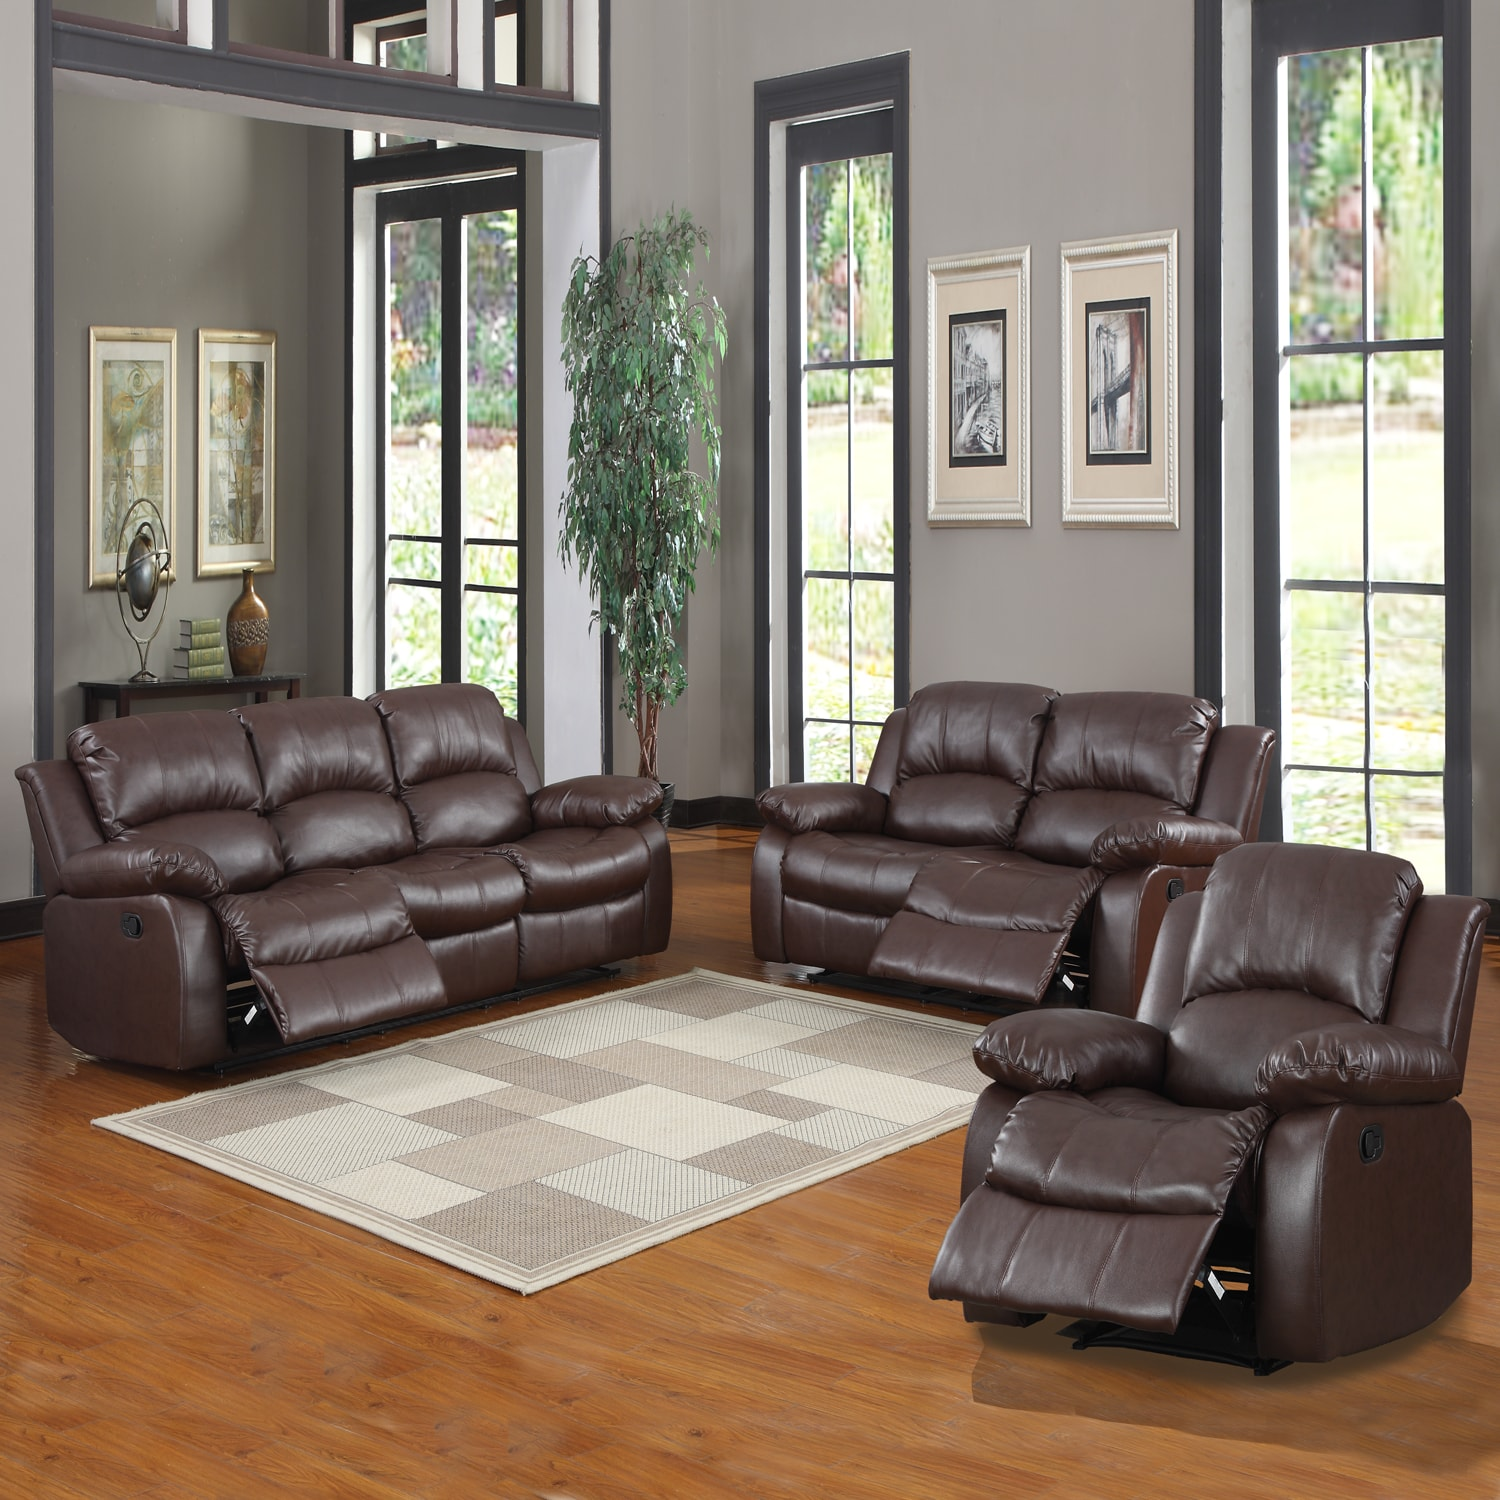 tribecca home coleford 3 piece tufted transitional reclining living room set overstock. Black Bedroom Furniture Sets. Home Design Ideas